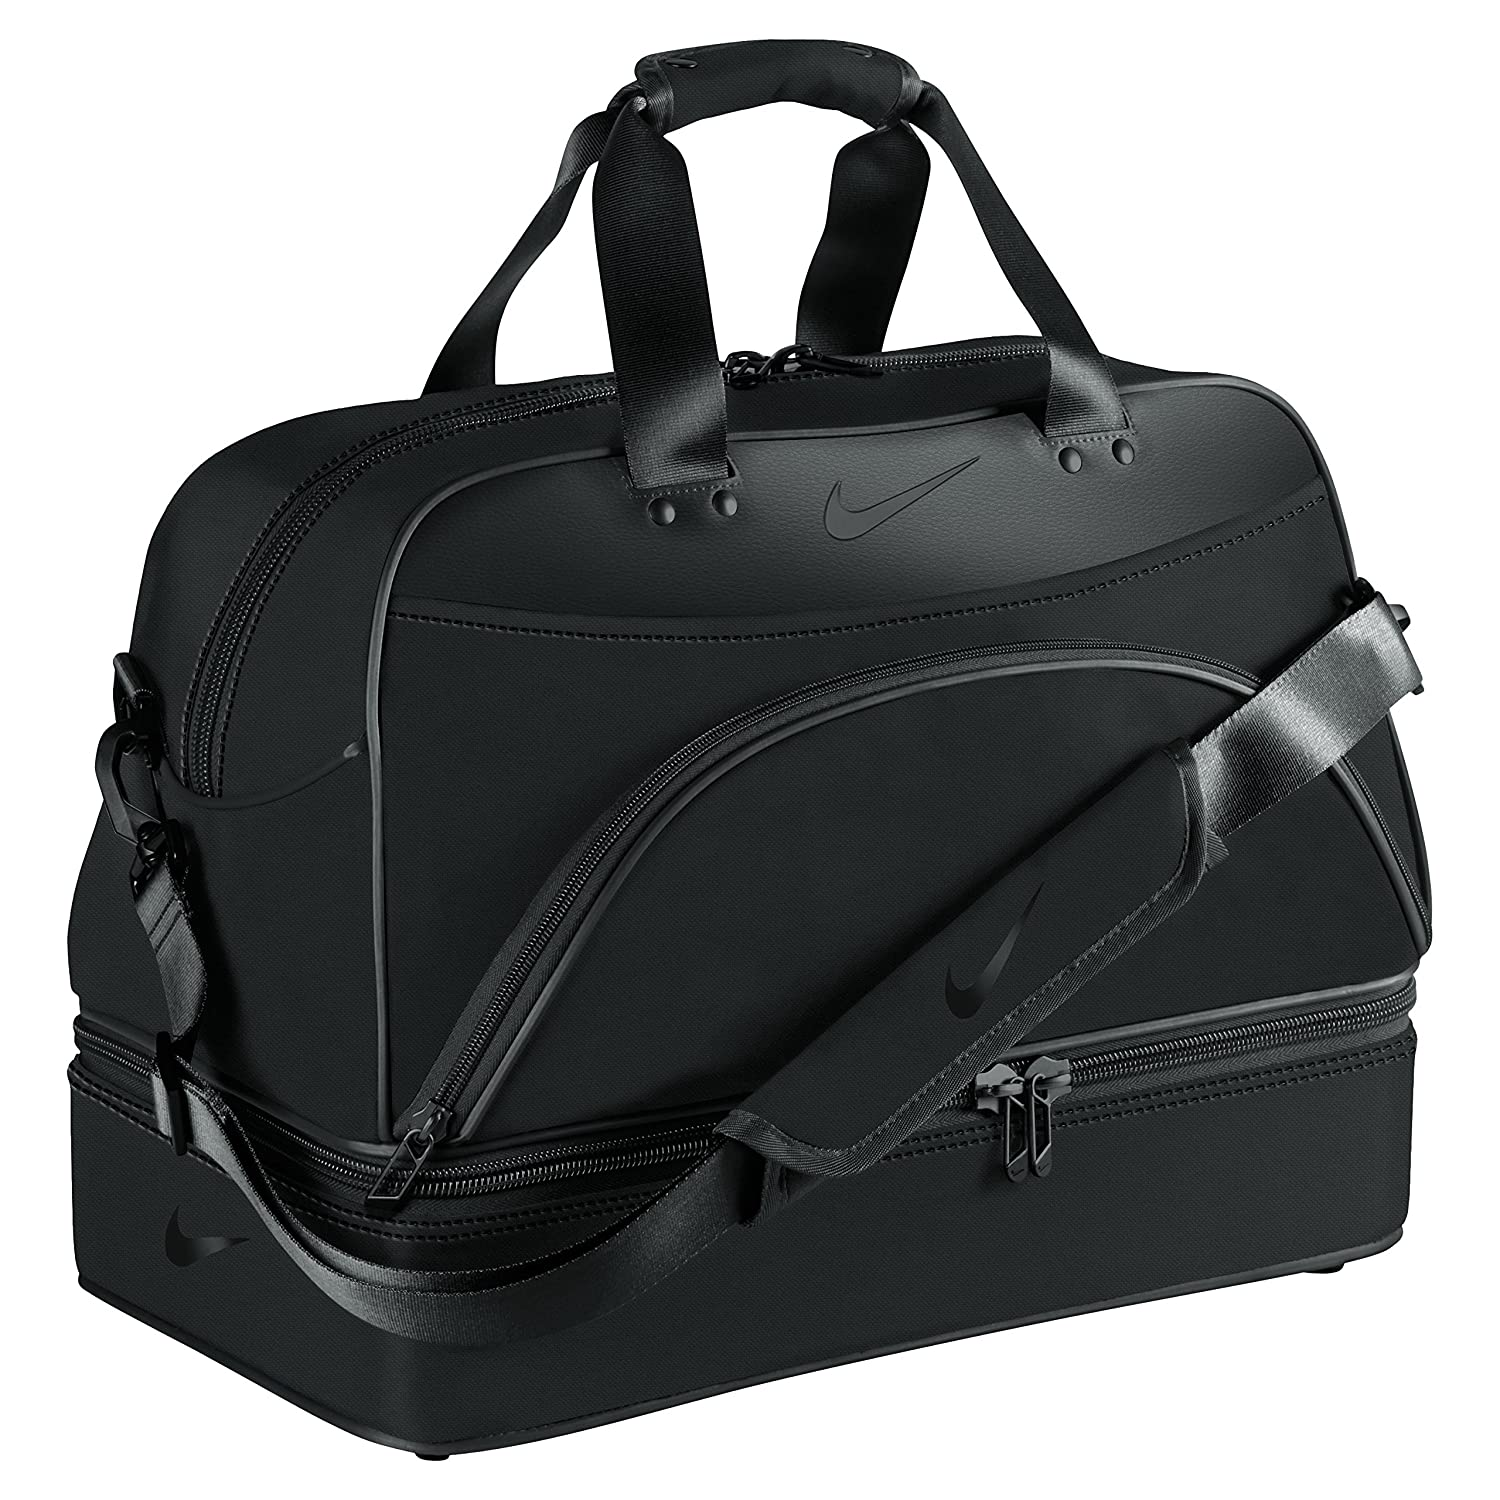 db82f14d29 Asbri Golf Leatherette Players Holdall - Black  Amazon.co.uk  Sports ...